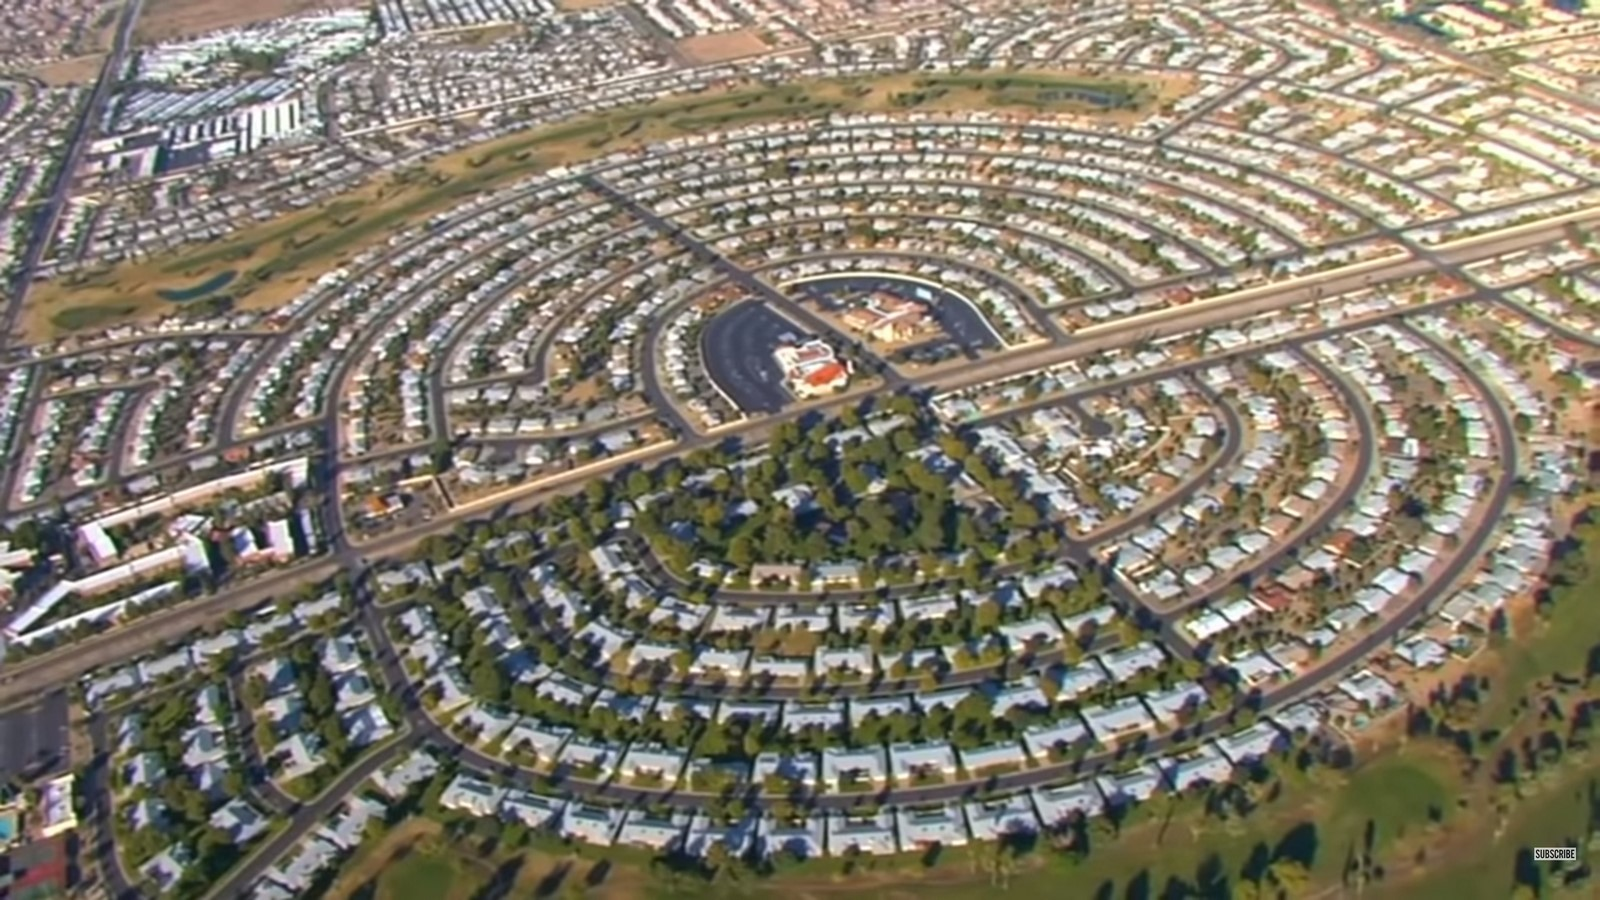 Documentaries for Architects: An architectural review of - Urbanized - Sheet7